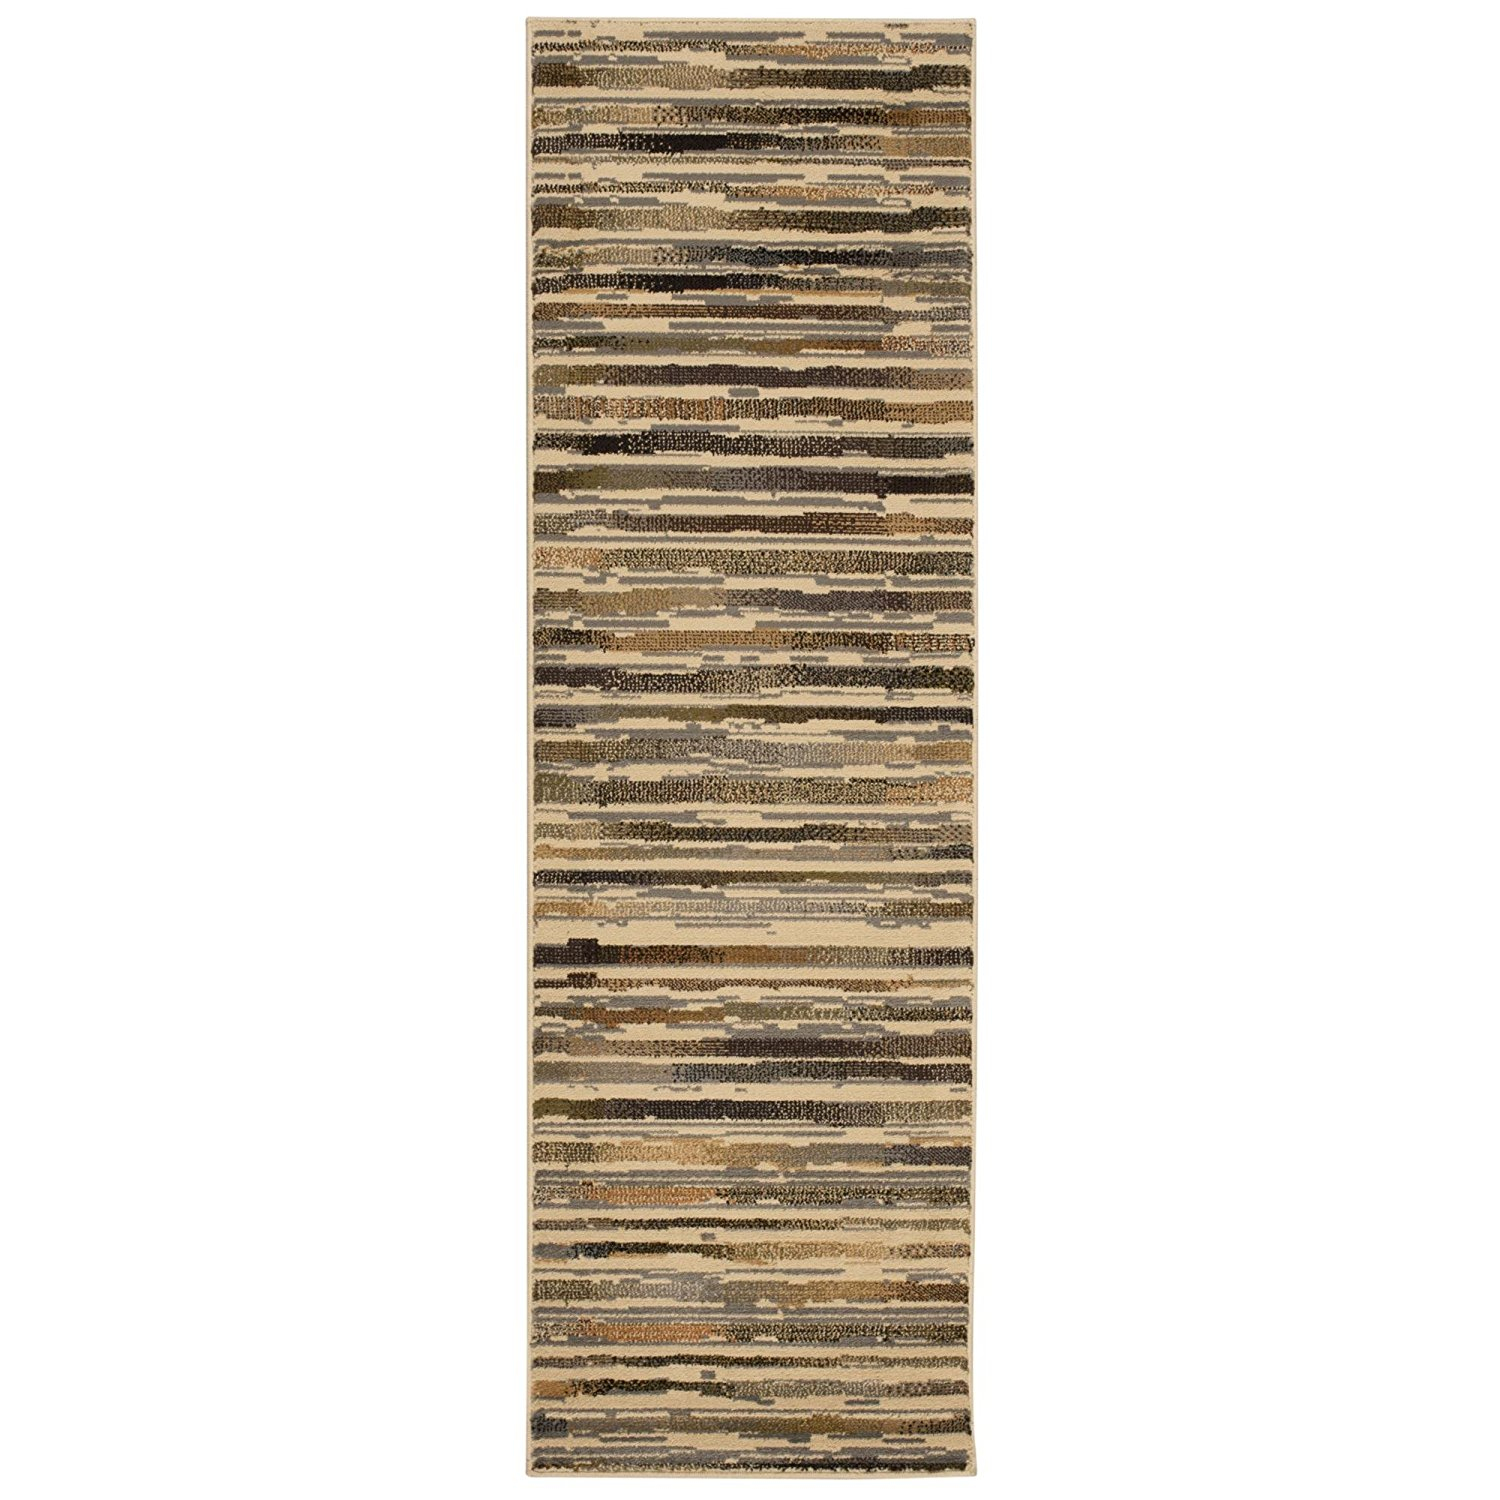 Rug Squared Mariposa Traditional Rug Runner (MAR15), 2-Feet 2-Inches by 7-Feet 3-Inches, Beige